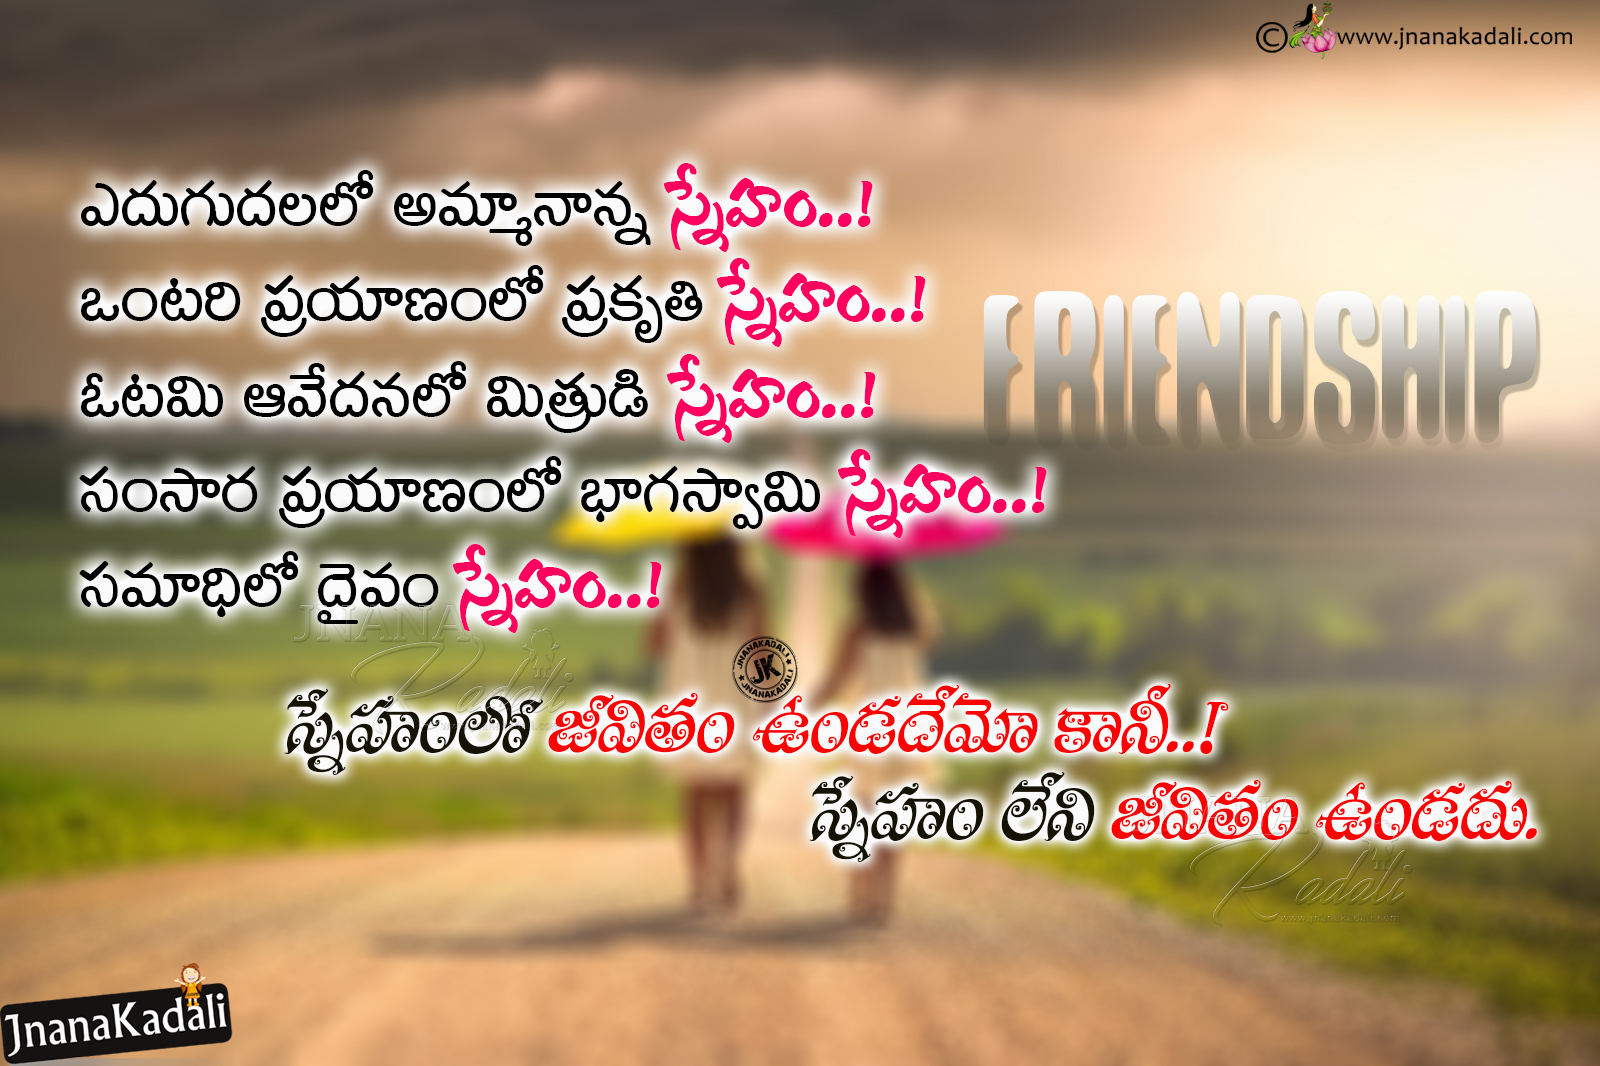 Touching Quotes About Friendship Glamorous Latest Best Telugu Friendship Heart Touching Quotes With Cute